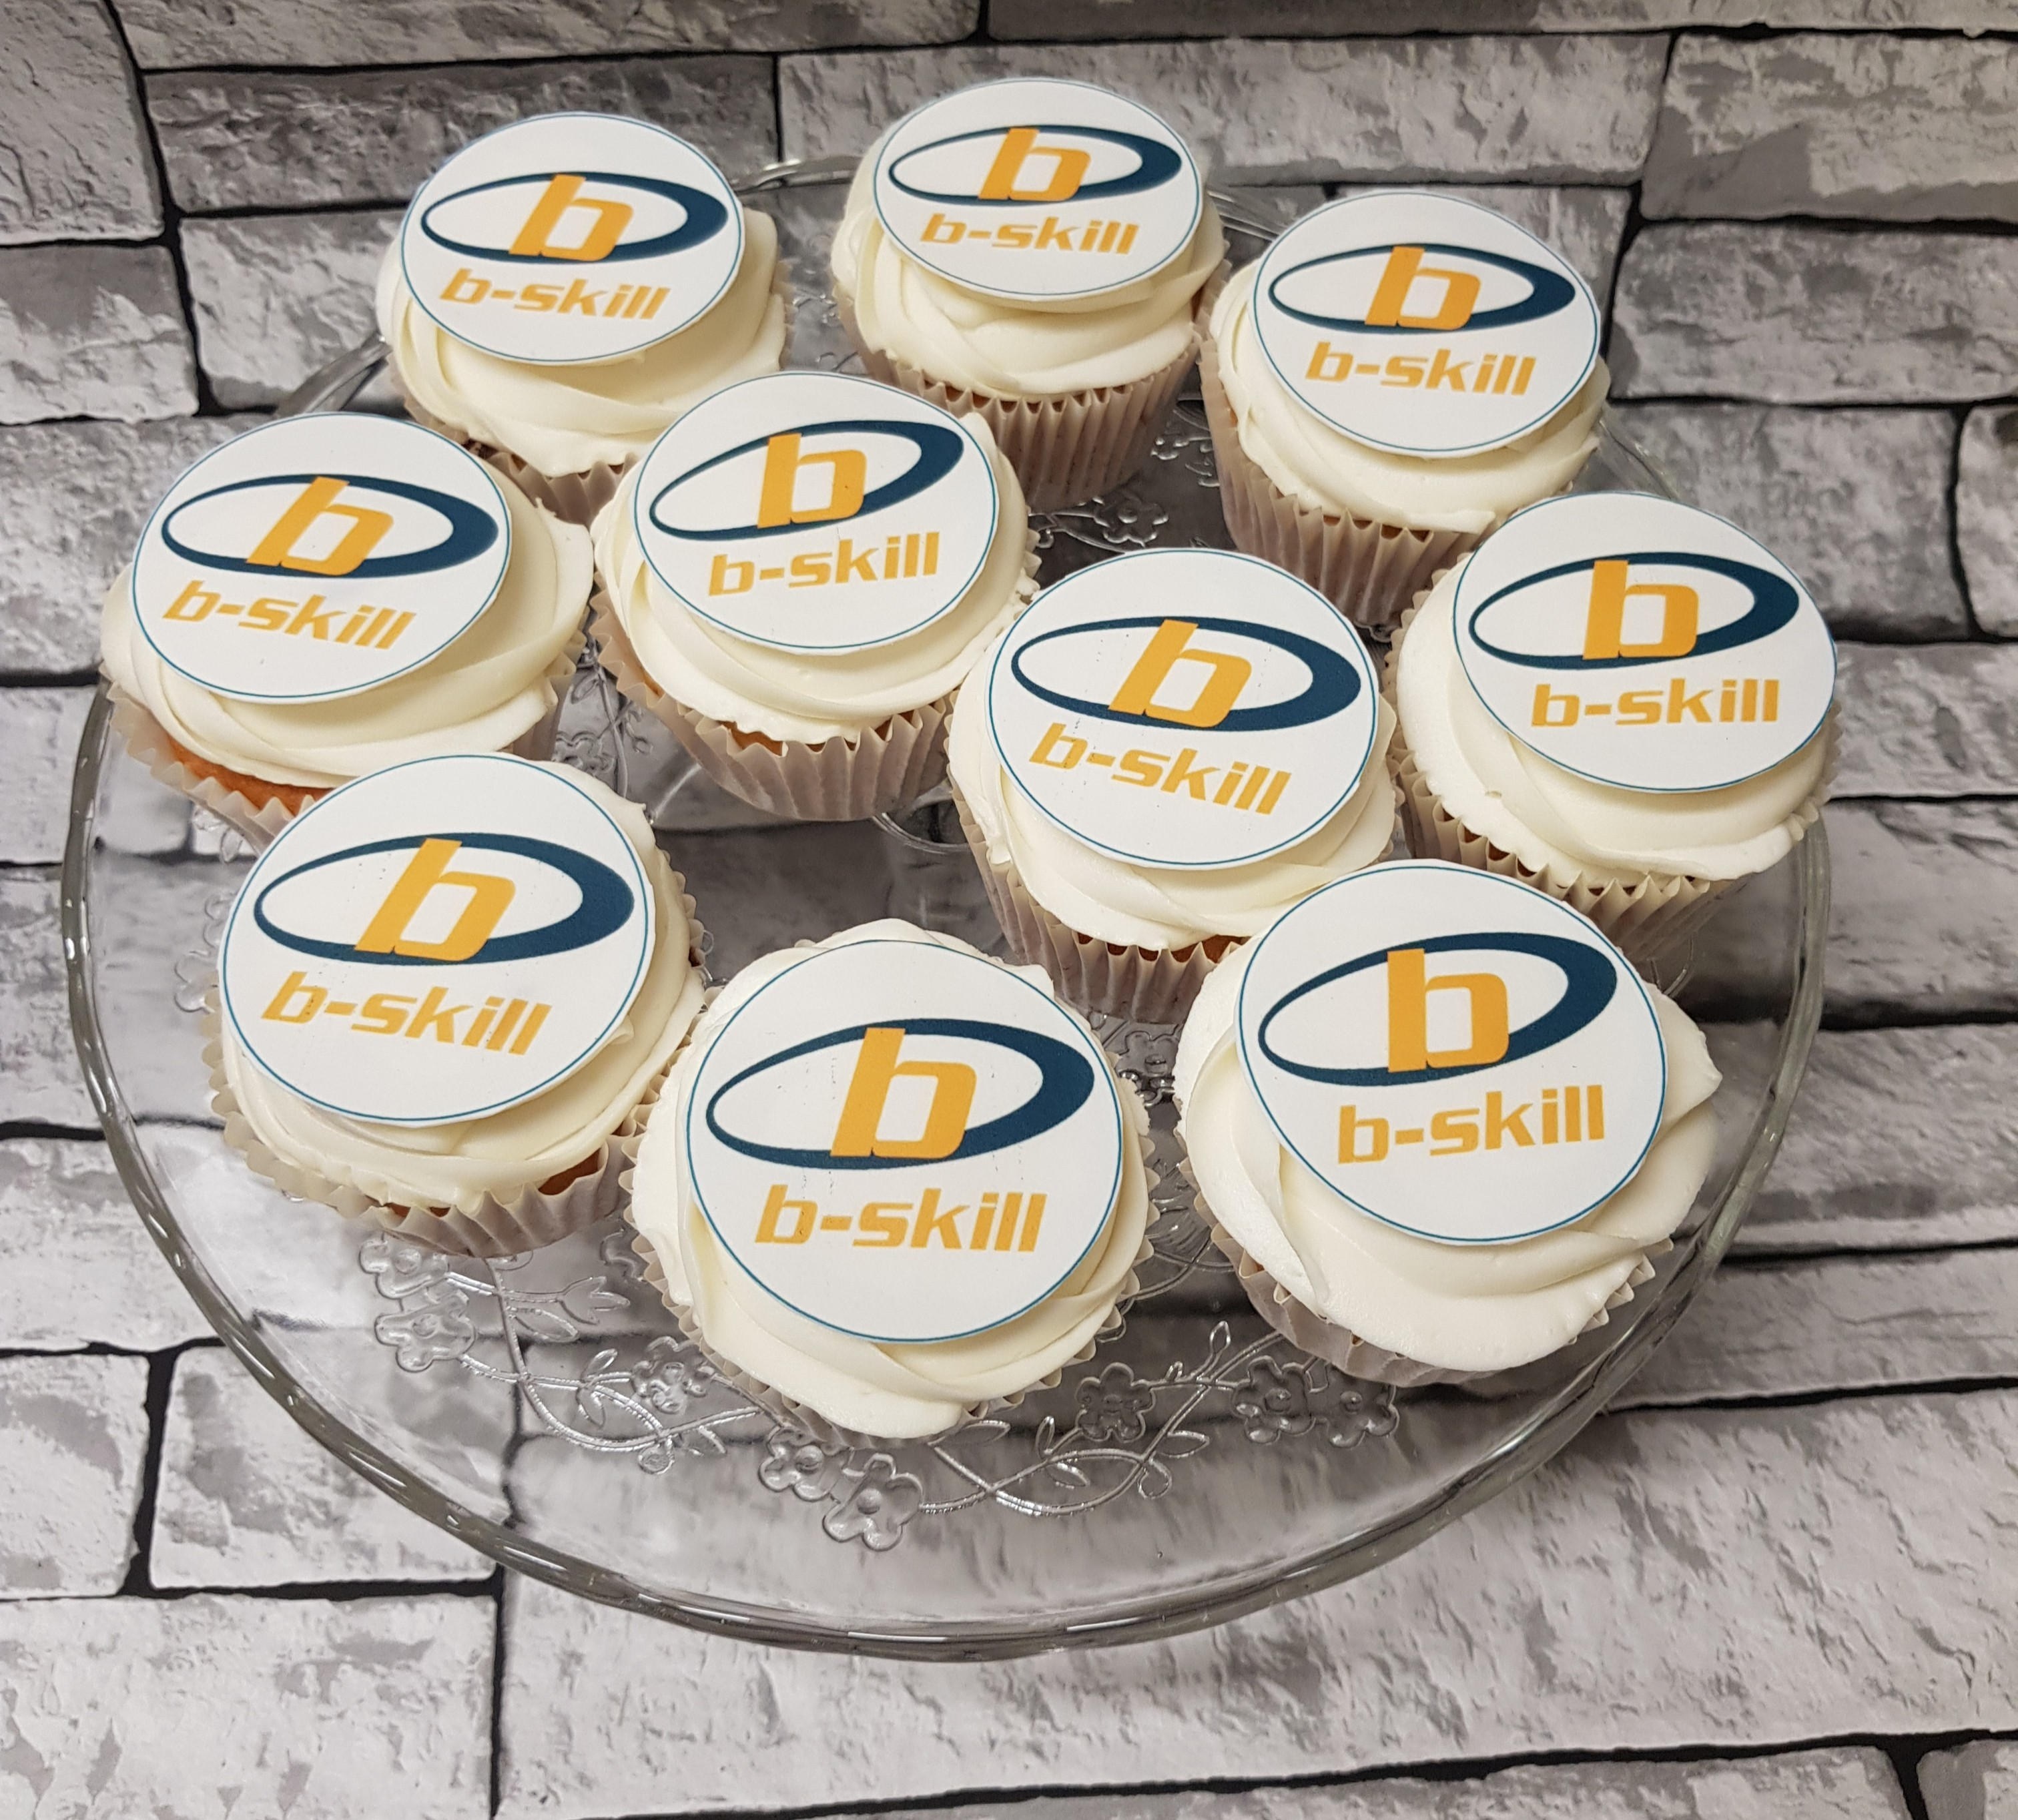 Corporate Logo Emblazoned Cupcakes